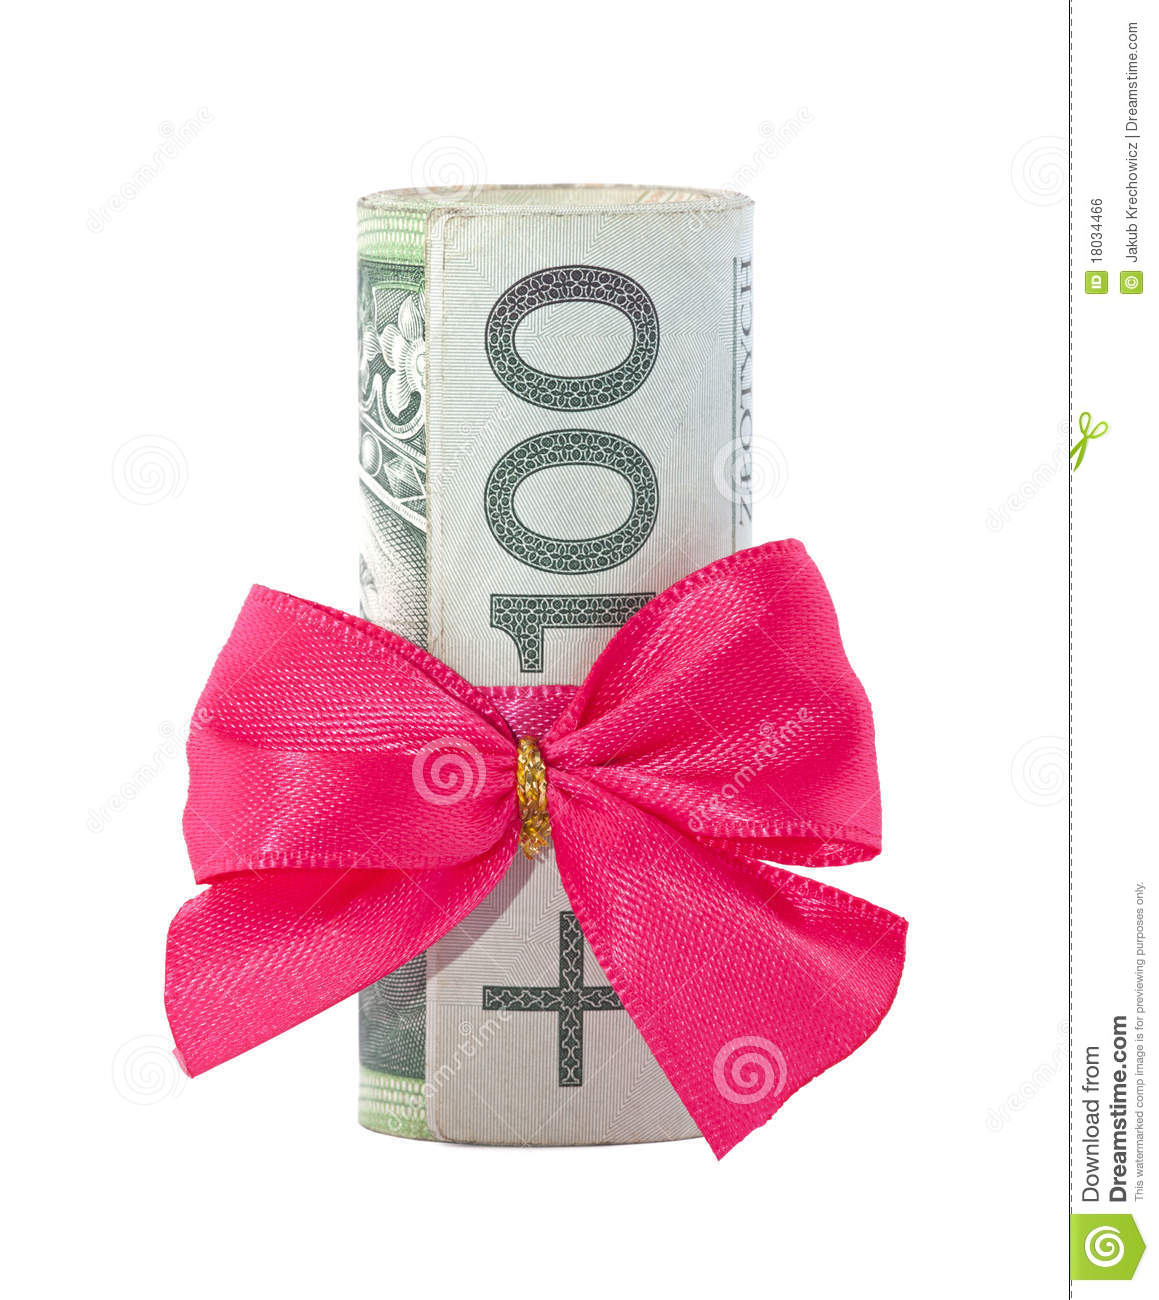 how to make a money roll for a gift